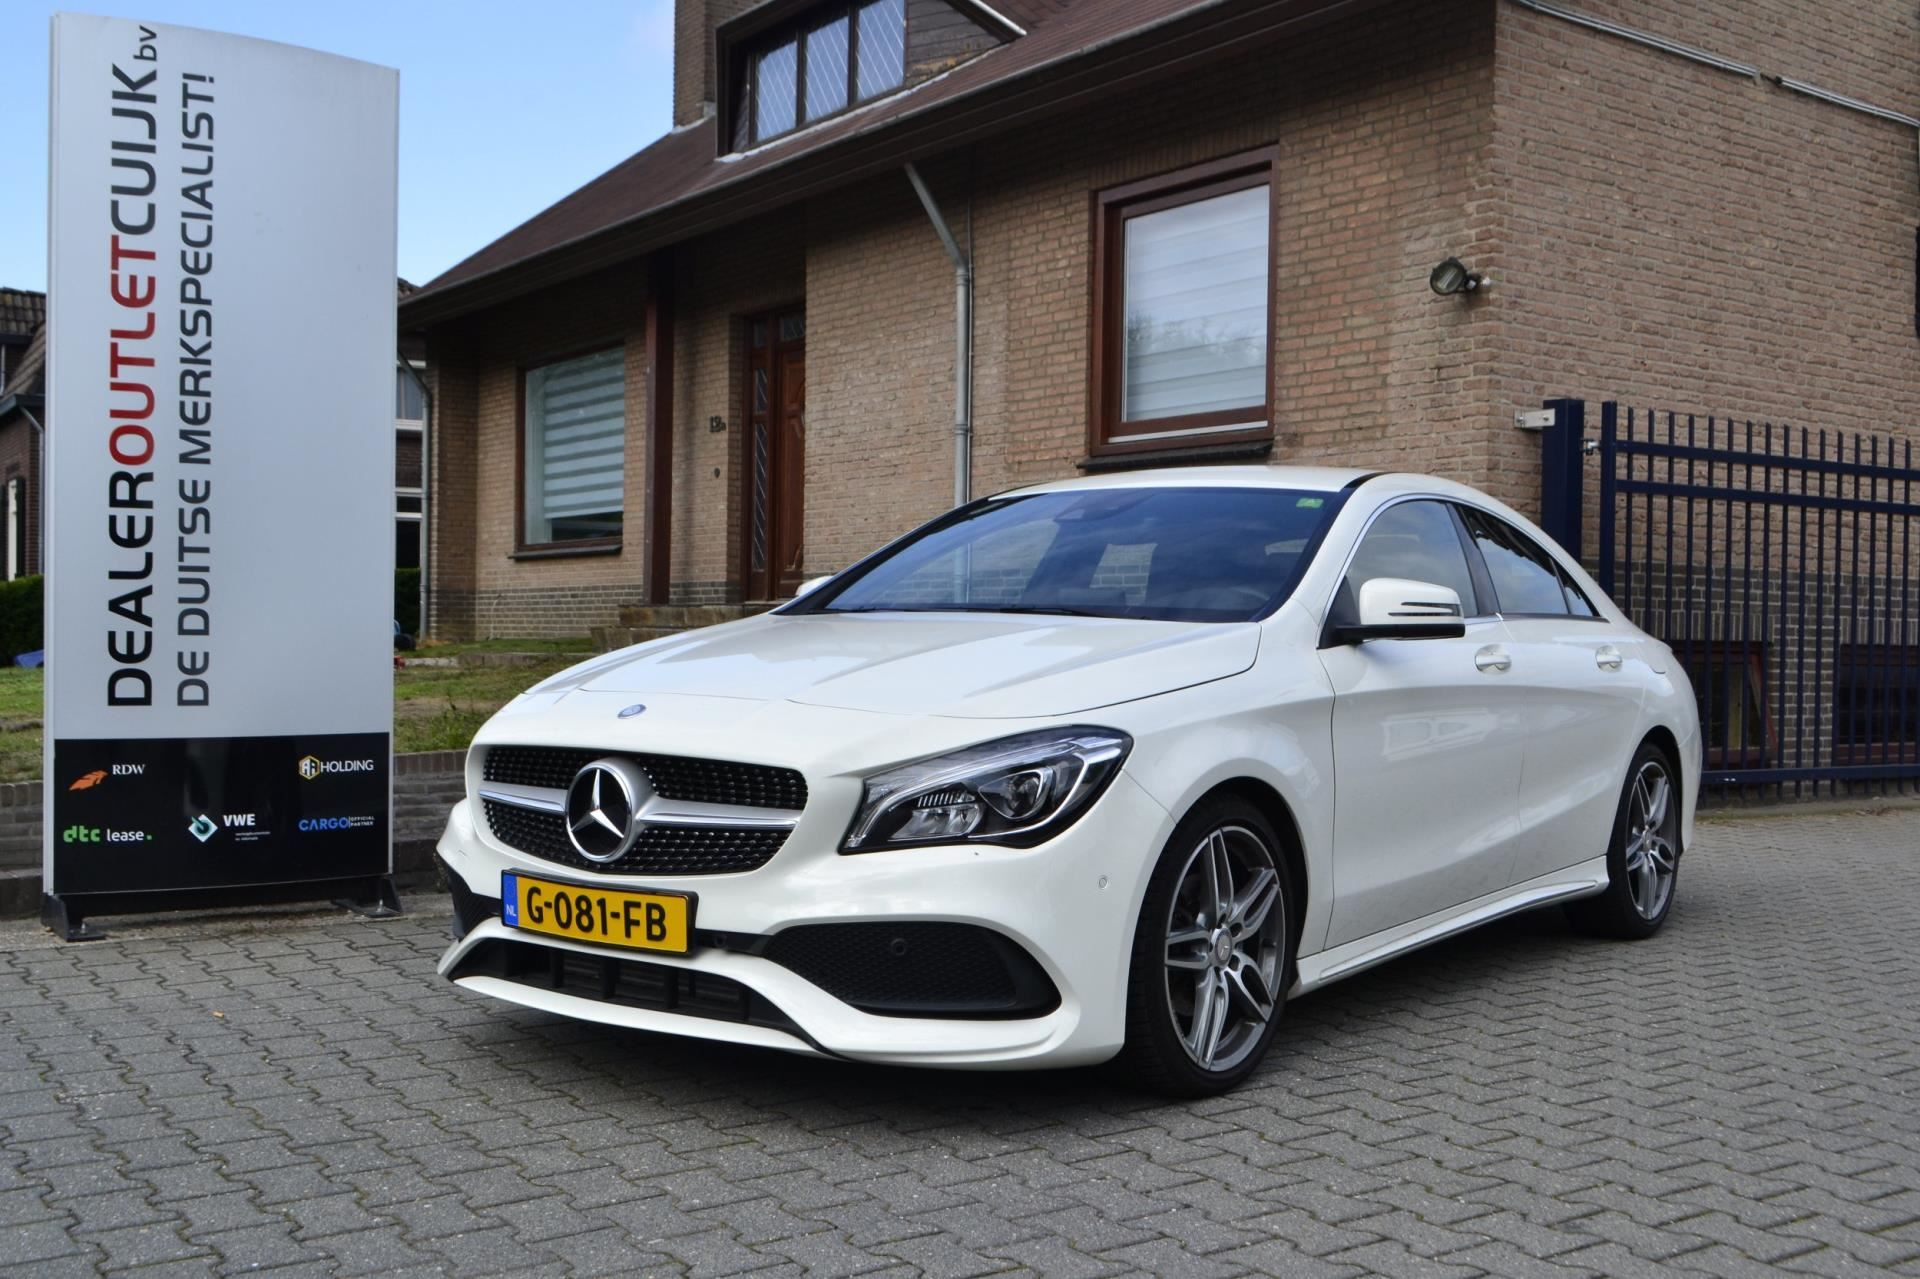 Mercedes-Benz CLA-klasse occasion - Dealer Outlet Cuijk b.v.